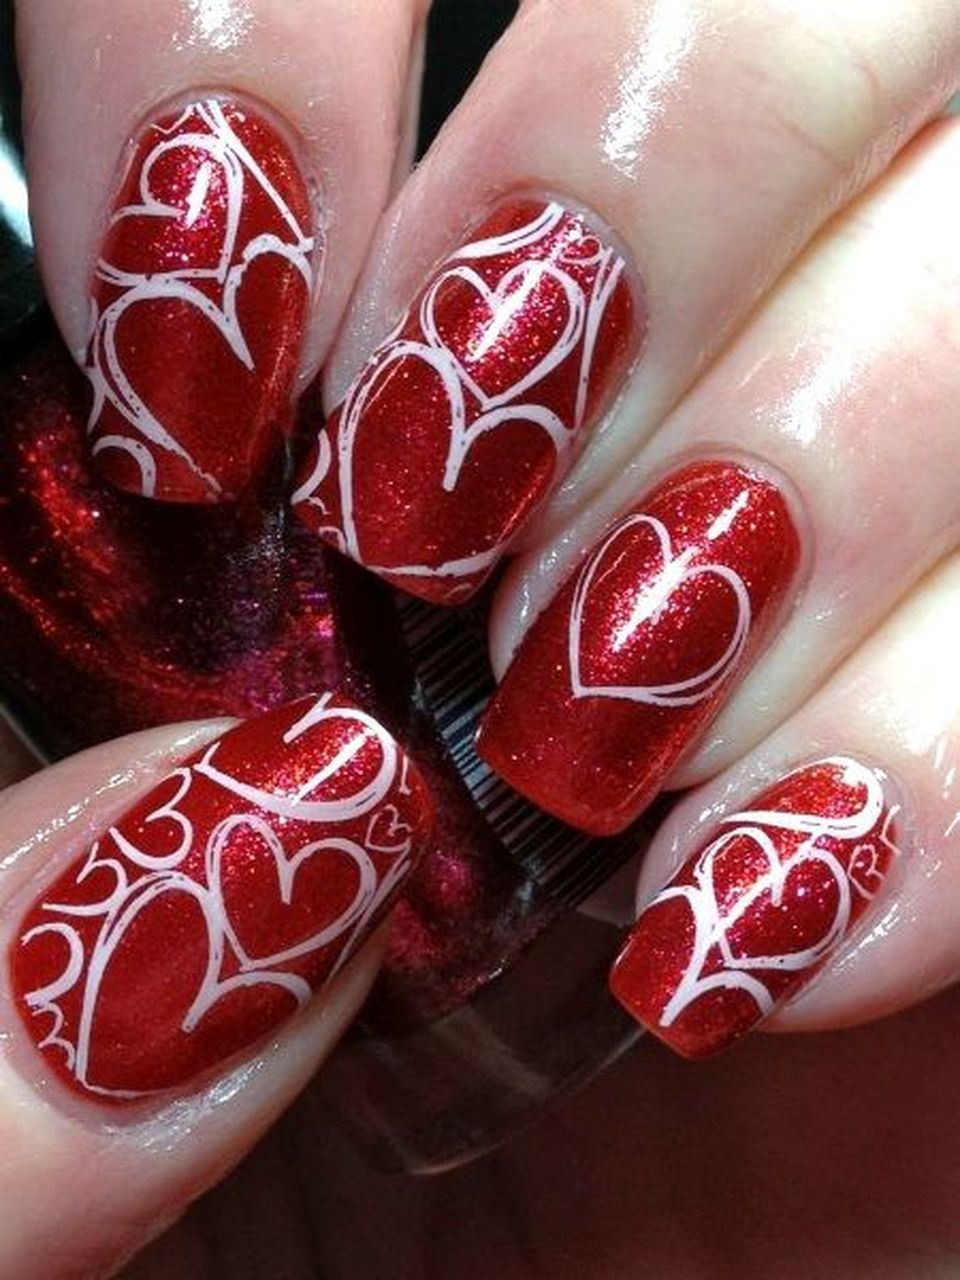 Discussion on this topic: 27 Pretty Nail Art Designs for Valentine's , 27-pretty-nail-art-designs-for-valentines/